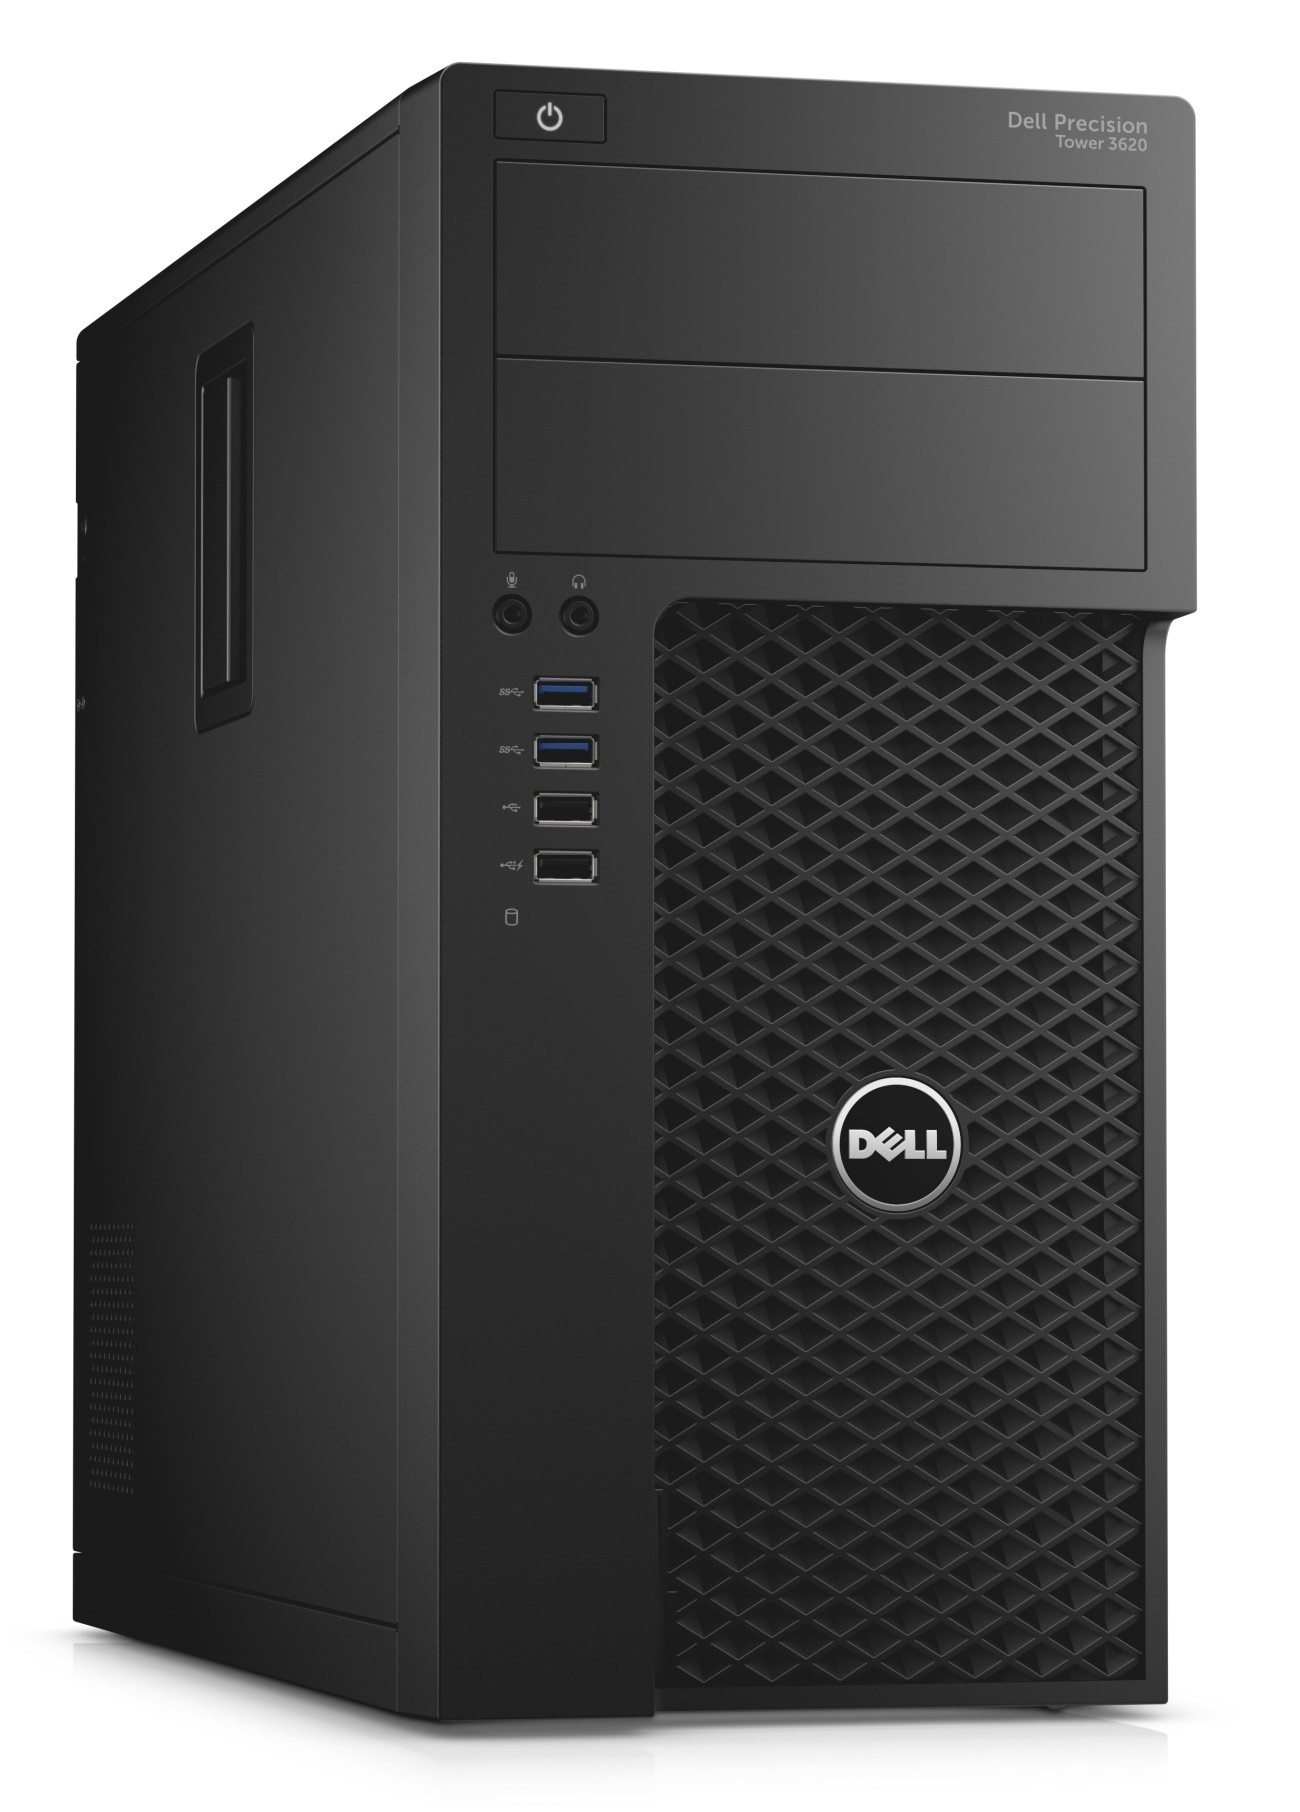 Dell Precision 3620 MT I7-6700 8GB 1TB P400 DVDRW W7P/W10P(64bit) 3Y PS